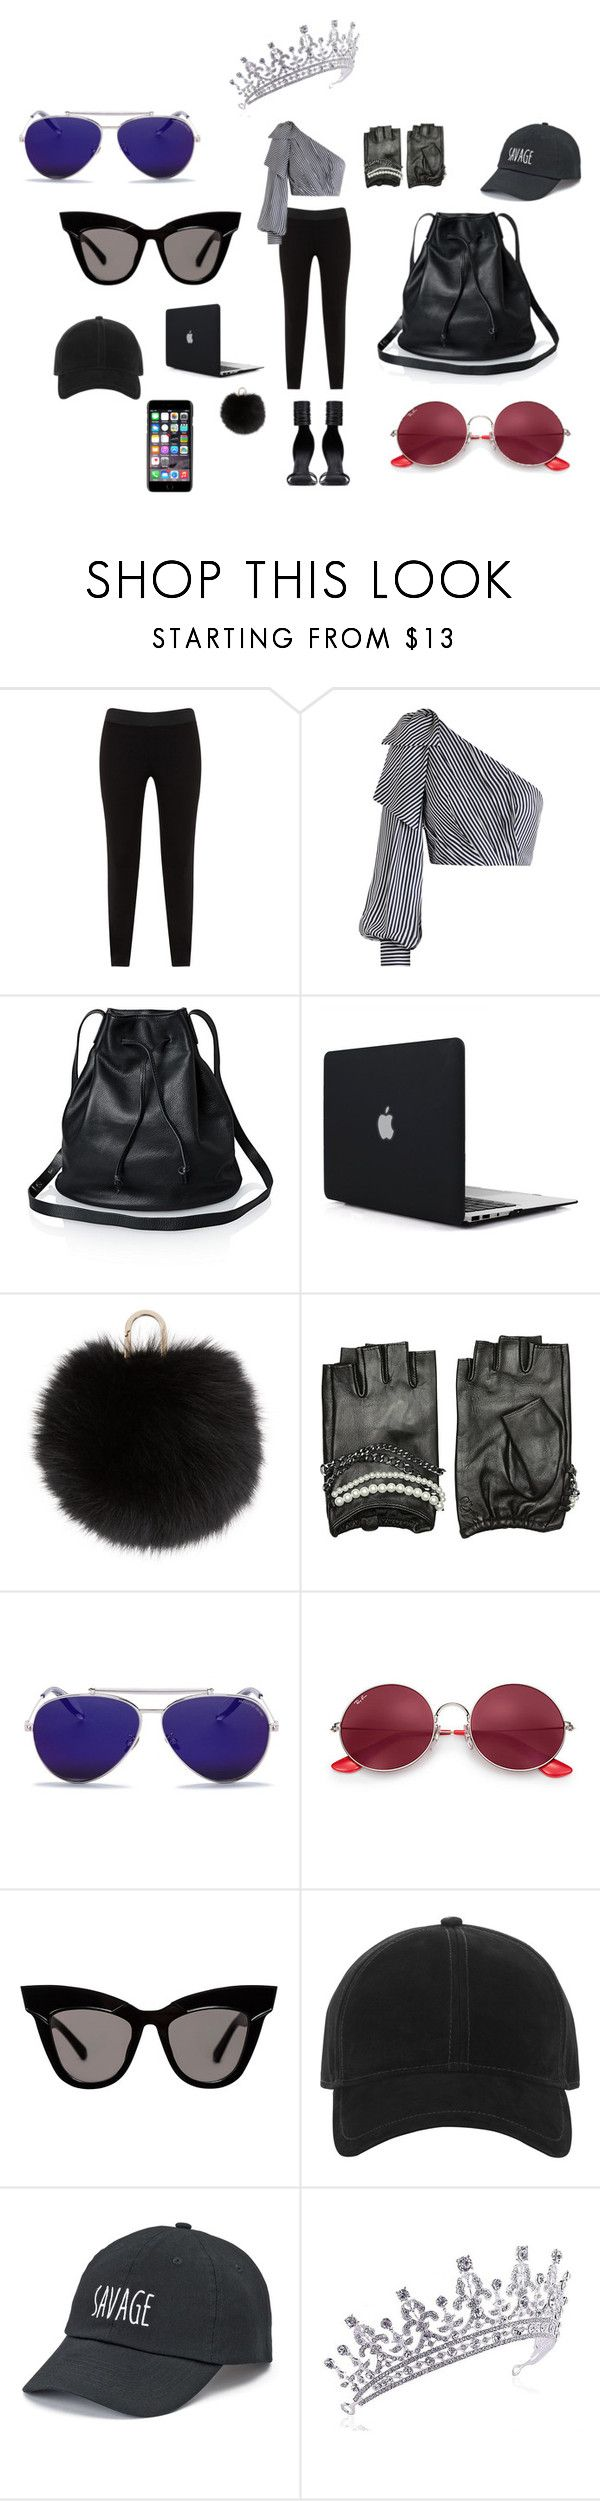 """Things that make a Supermodel S-U-P-E-R!"" by paris55587 ❤ liked on Polyvore featuring JunaRose, Zimmermann, Rick Owens, Yves Salomon, Karl Lagerfeld, Alexander McQueen, Ray-Ban, rag & bone, SO and Dolce&Gabbana"